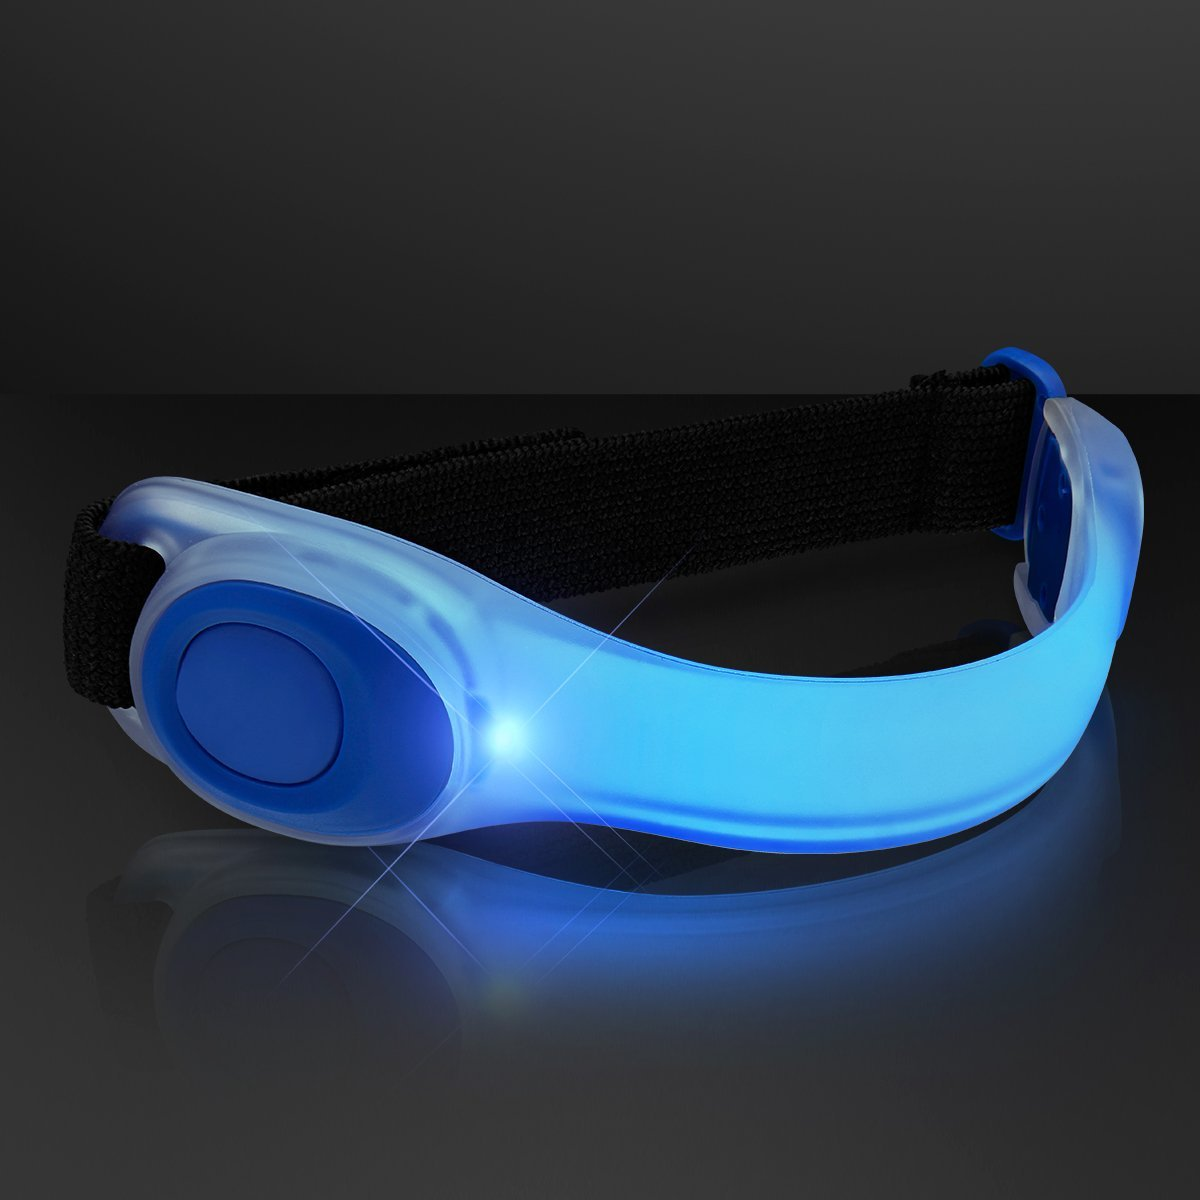 Deluxe LED Night Light Safety Jogging Bicycling Armband Blue by Blinkee